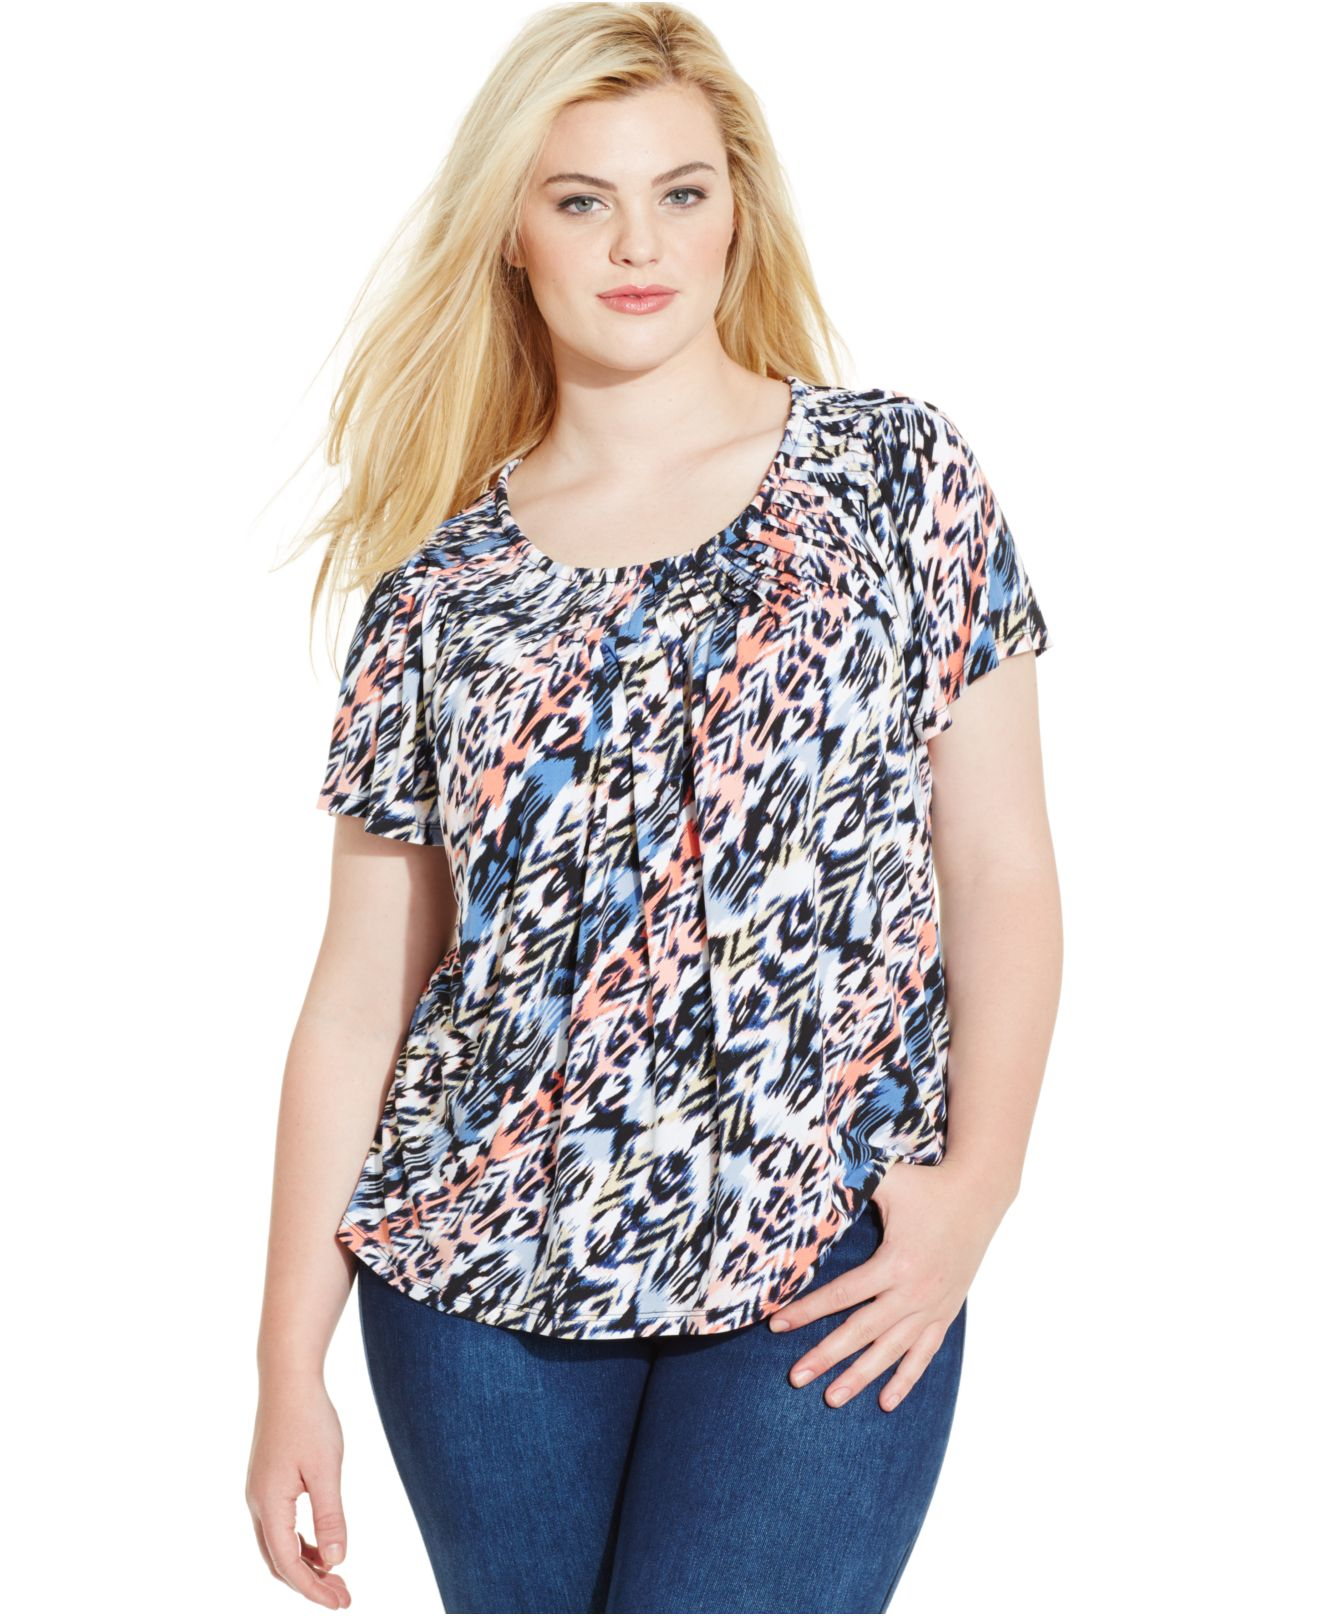 Product Description bib adds chic sparkle to the classic and gauzy plus size peasant top.